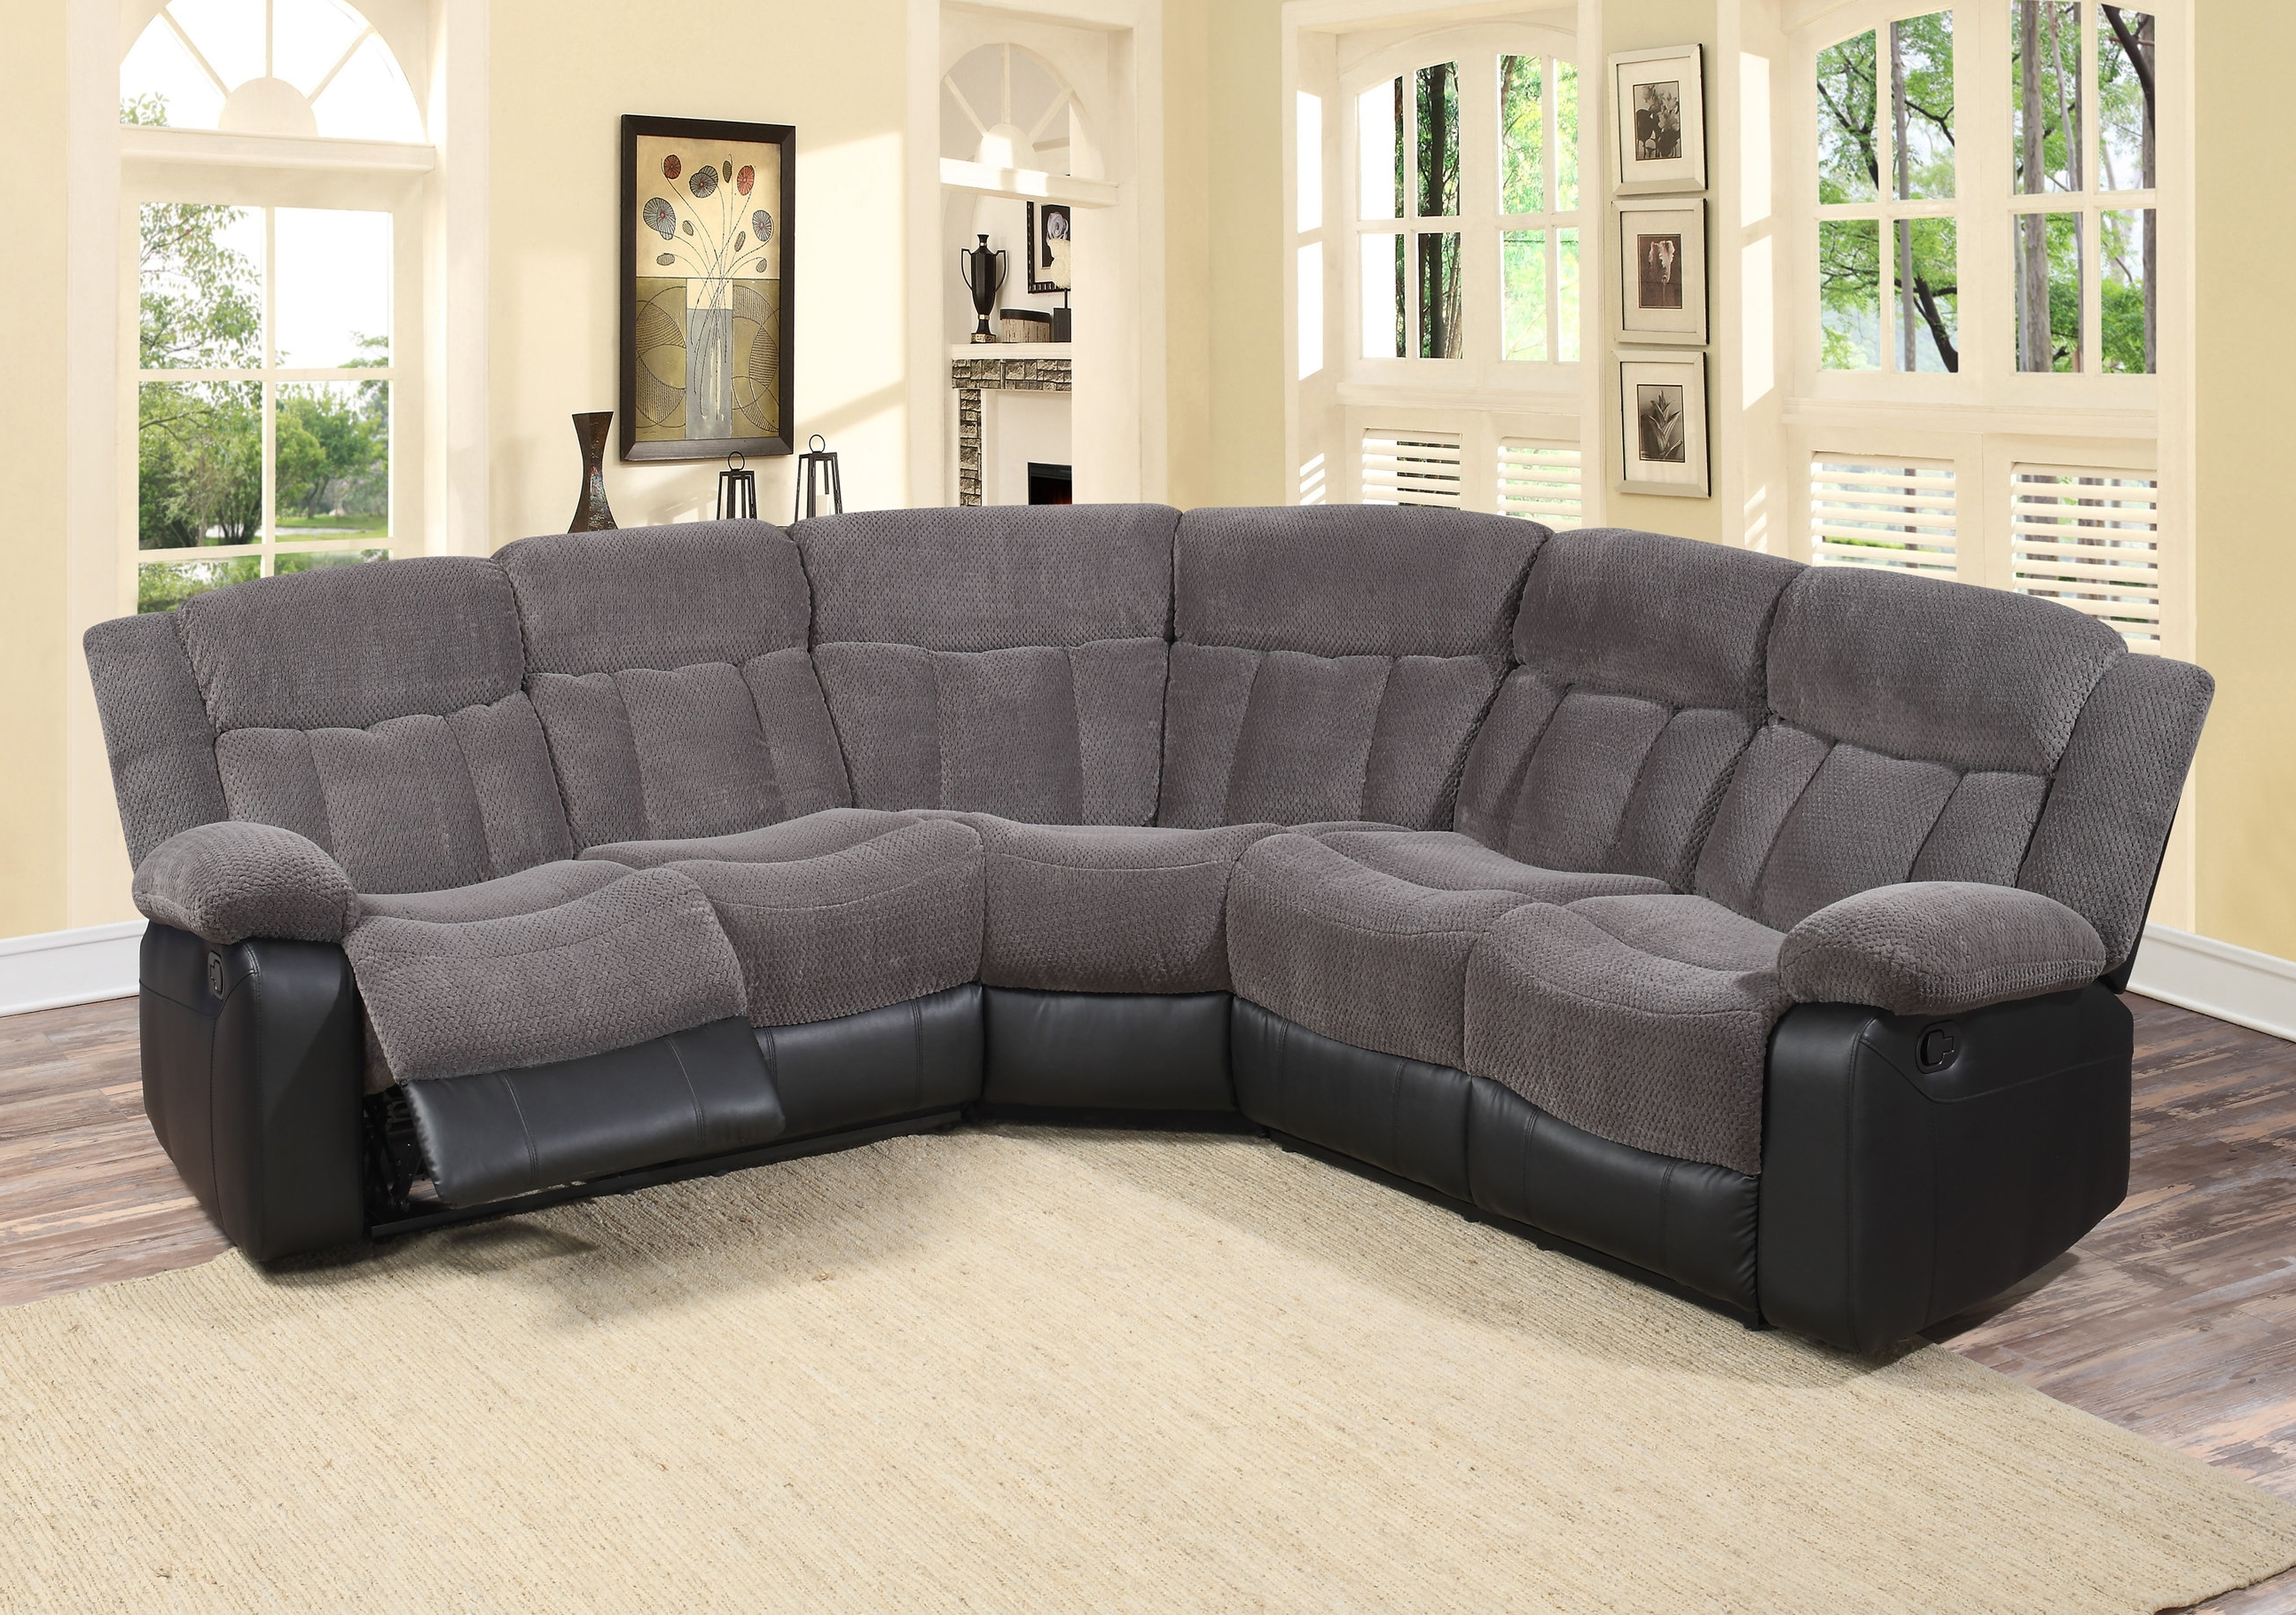 Most Popular Reclining Sectionals You'll Love (View 10 of 15)